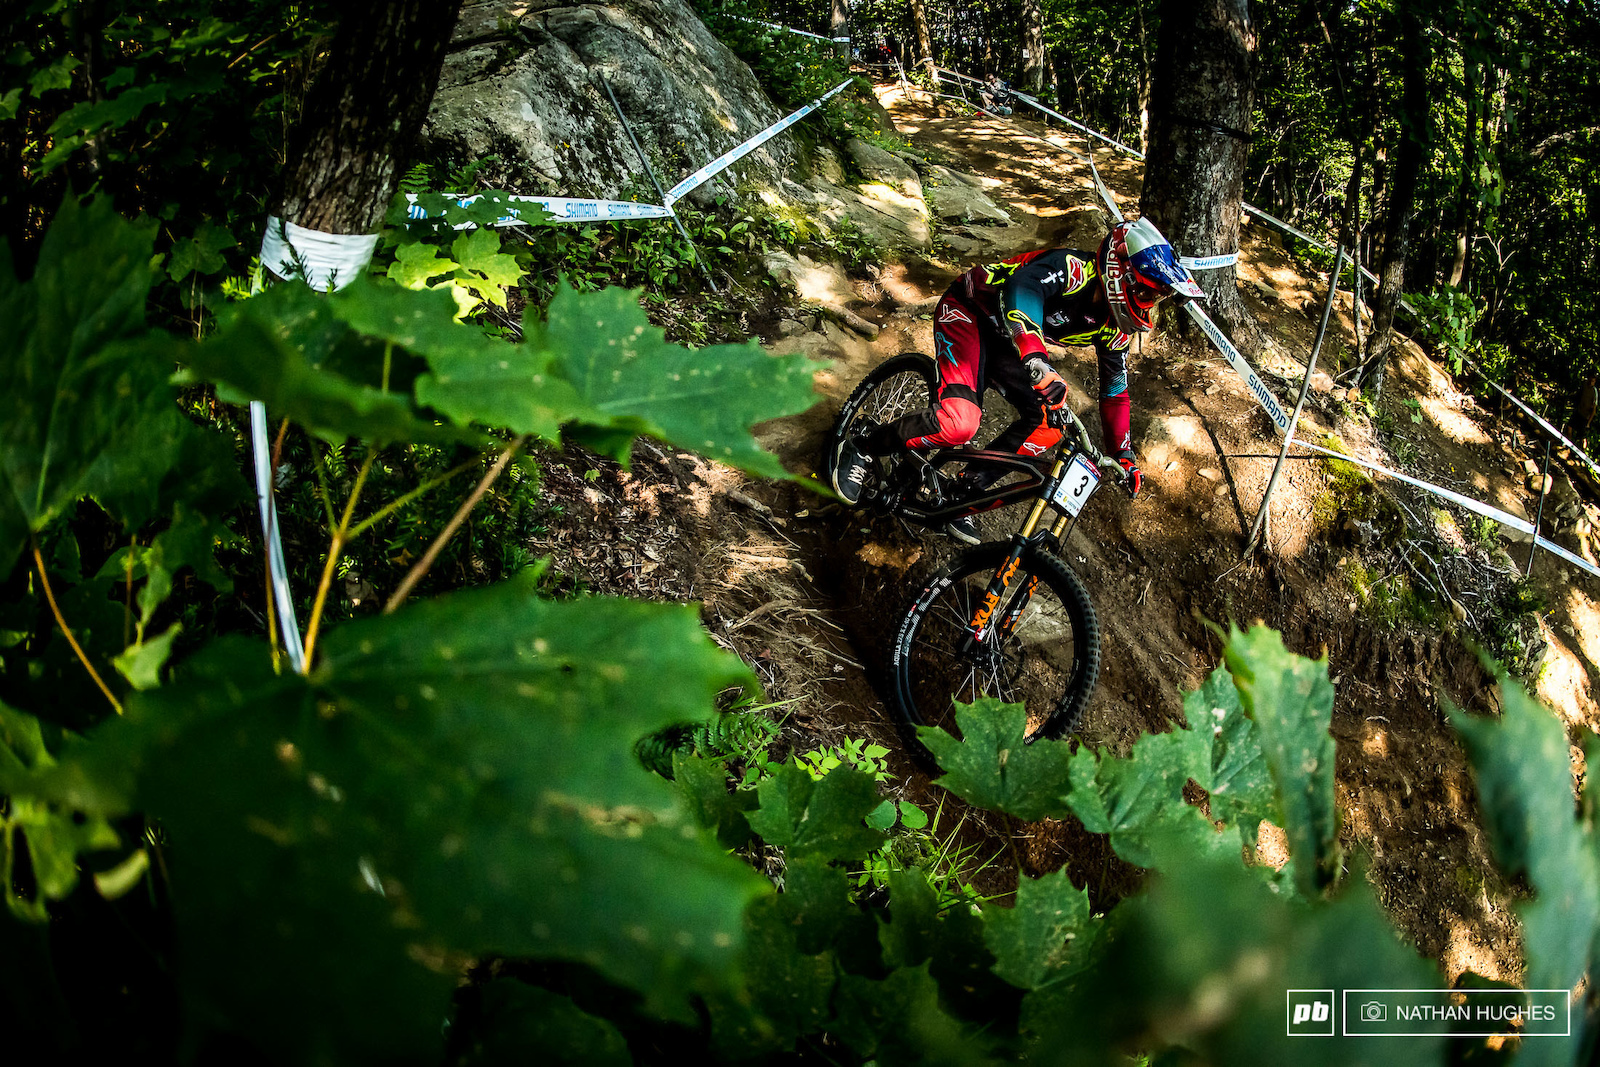 Aaron Gwin gave absolutely nothing away cruising to 48th in the TT but did take more laps than usual..